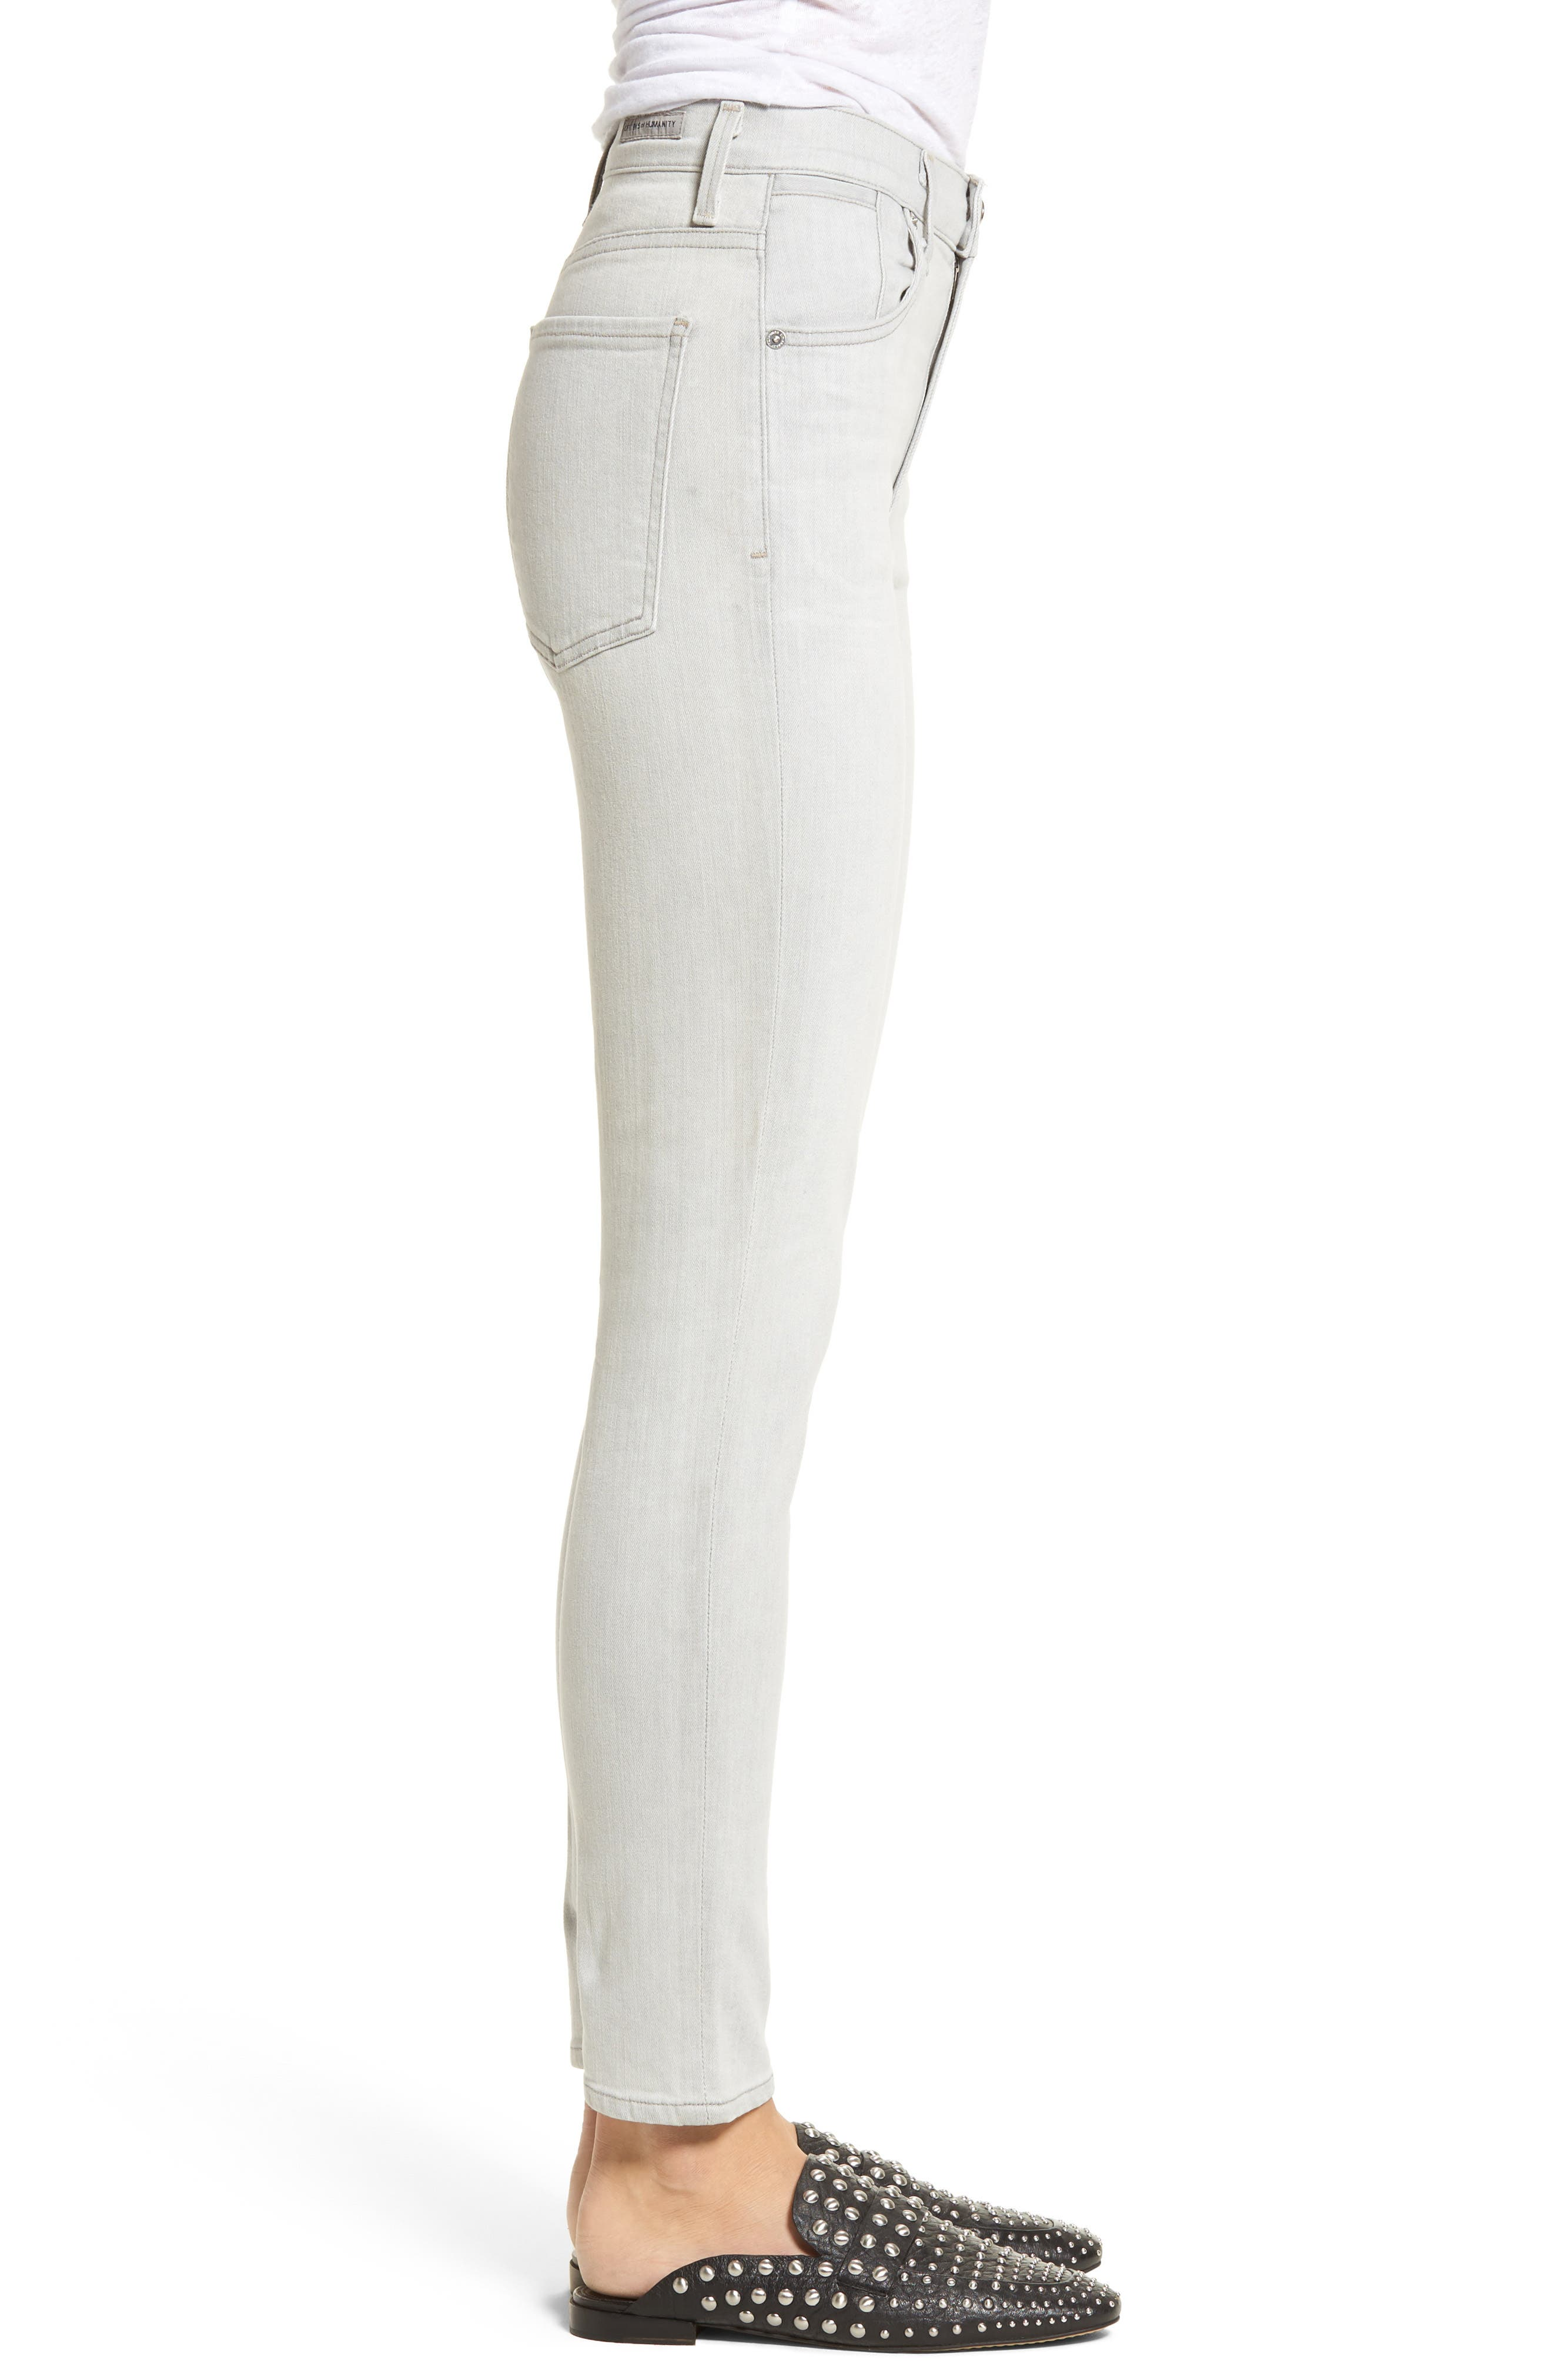 Carlie High Waist Ankle Skinny Jeans,                             Alternate thumbnail 3, color,                             055